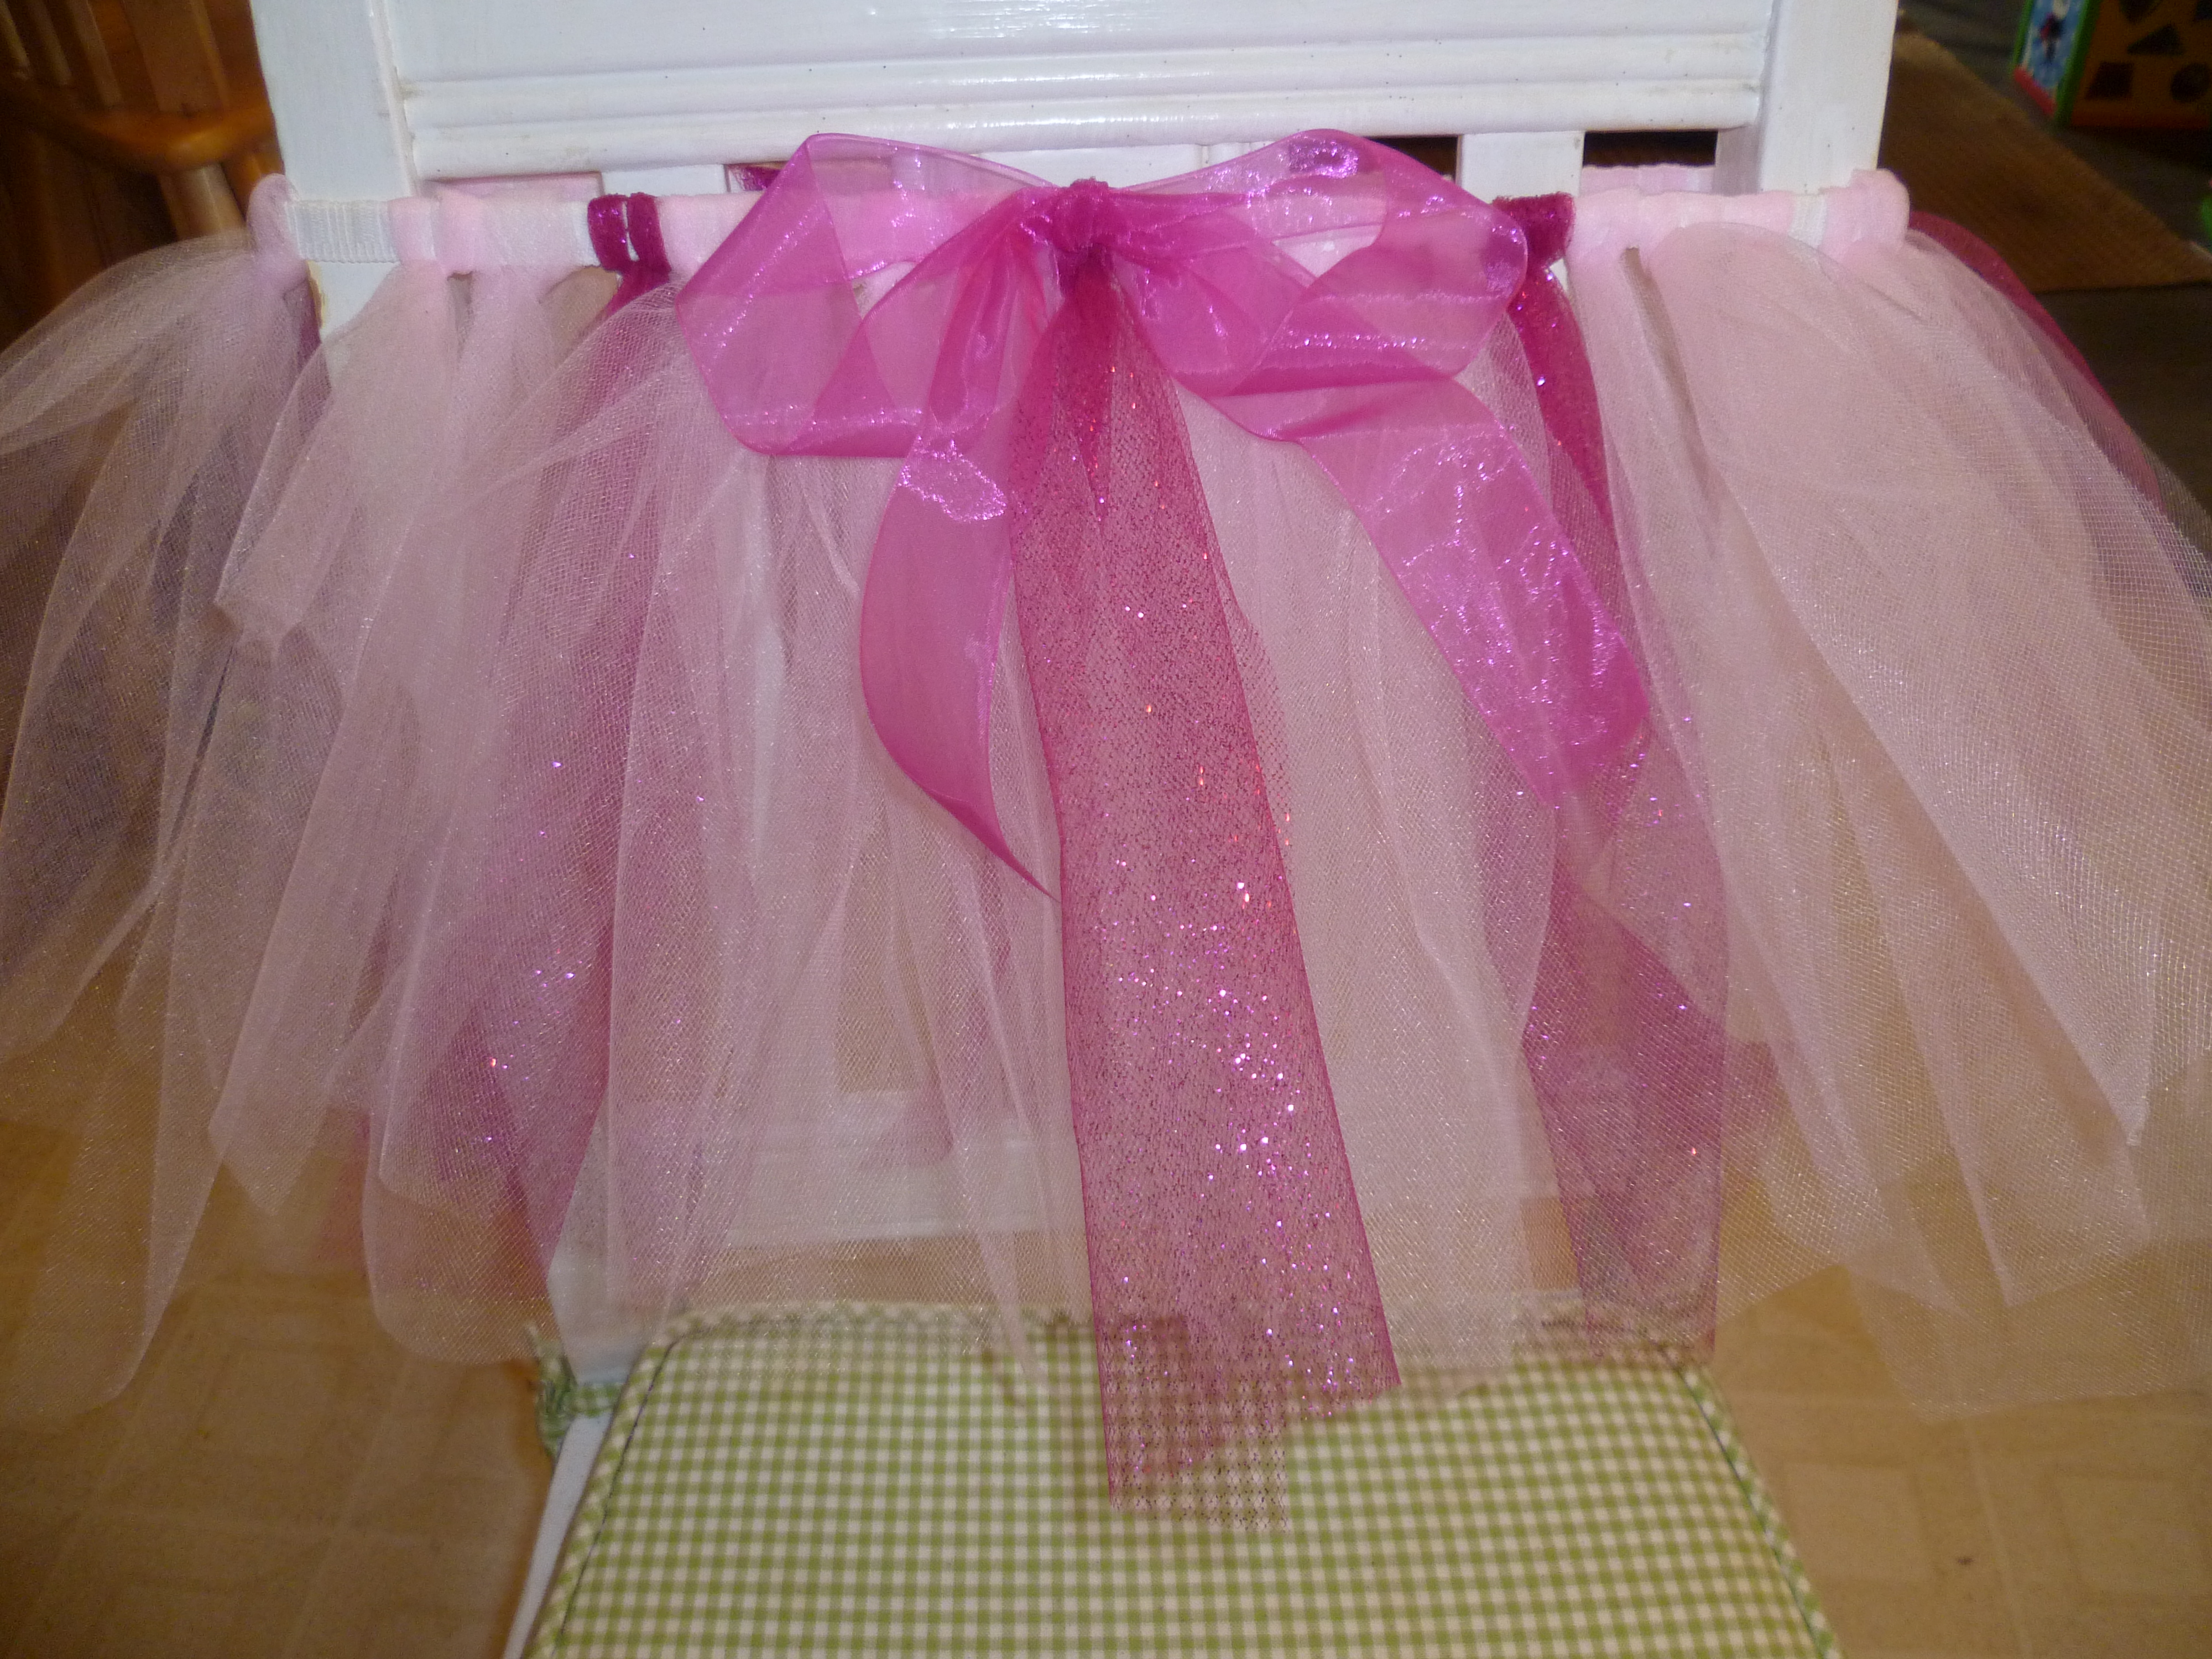 How to Make a Dress-Up Tutu